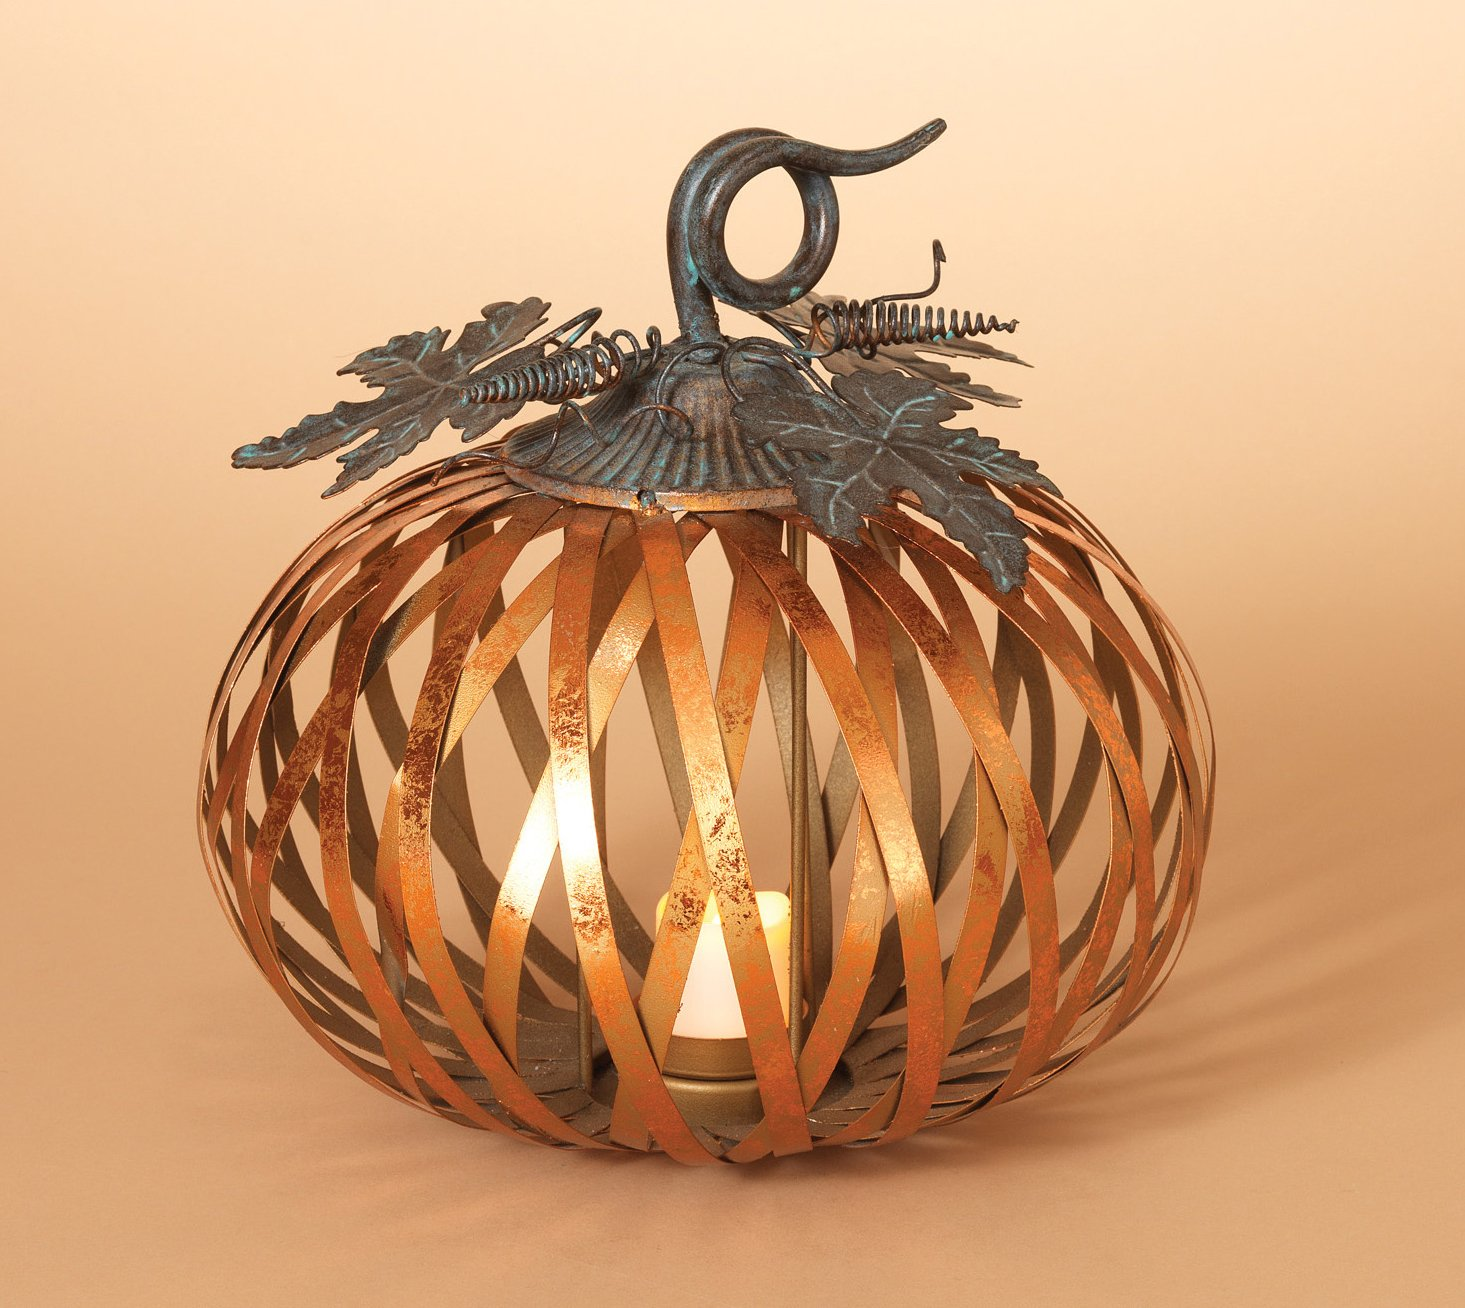 One Holiday Lane Metal Harvest Pumpkin Candle Holder with Metallic Copper Finish - Tabletop Fall Candle Holder Decoration